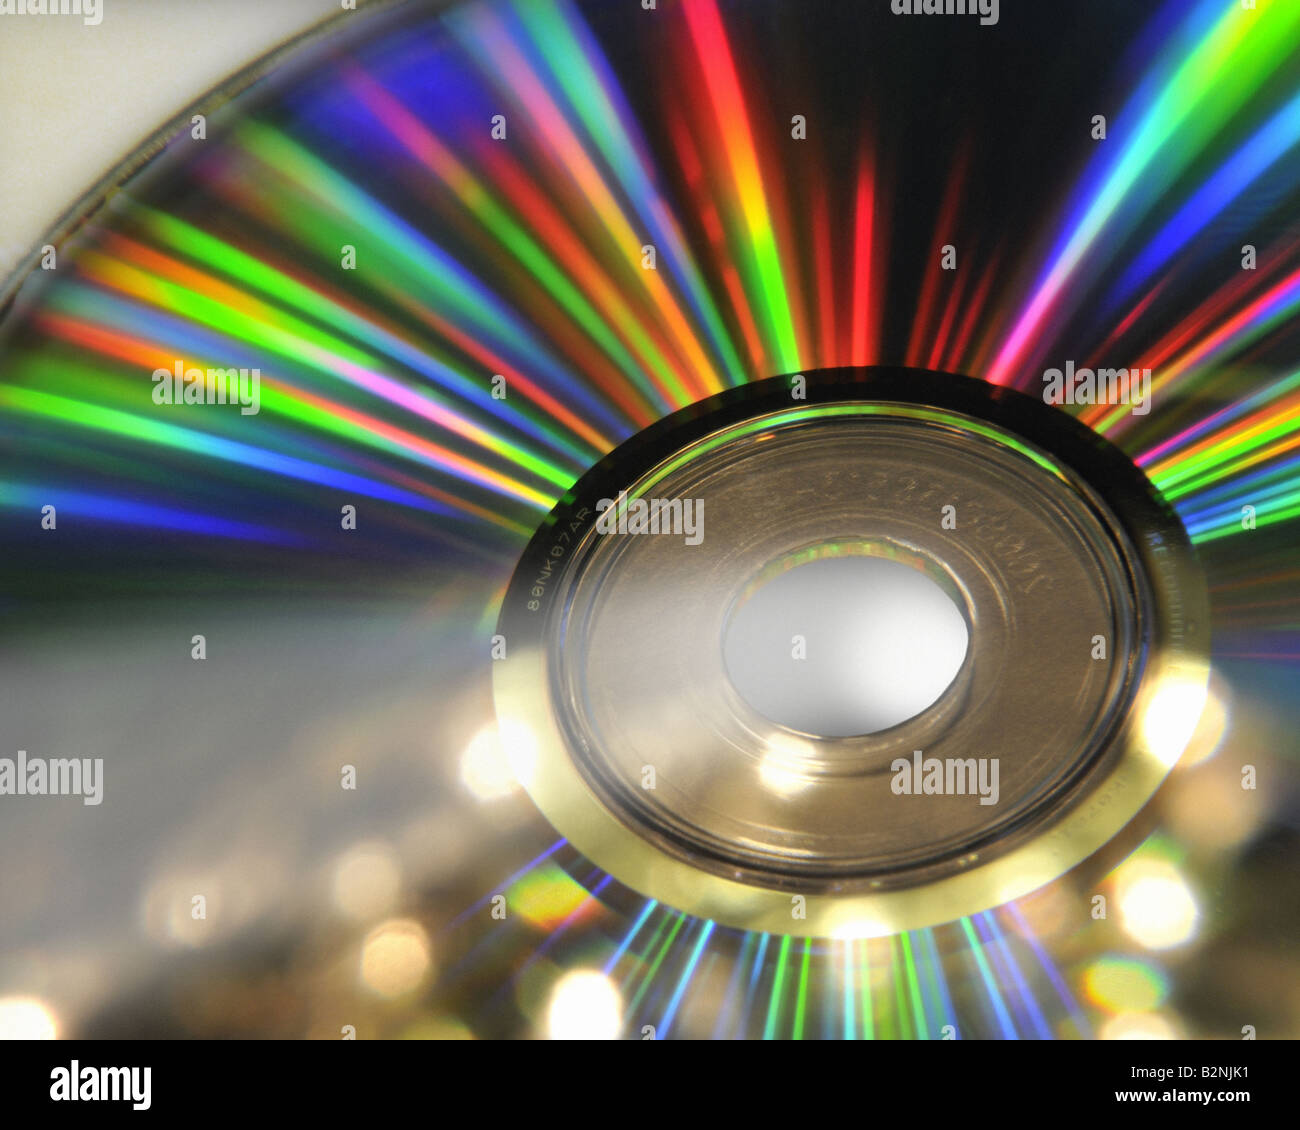 TECHNOLOGY CONCEPT: Close-up view of CD - Stock Image